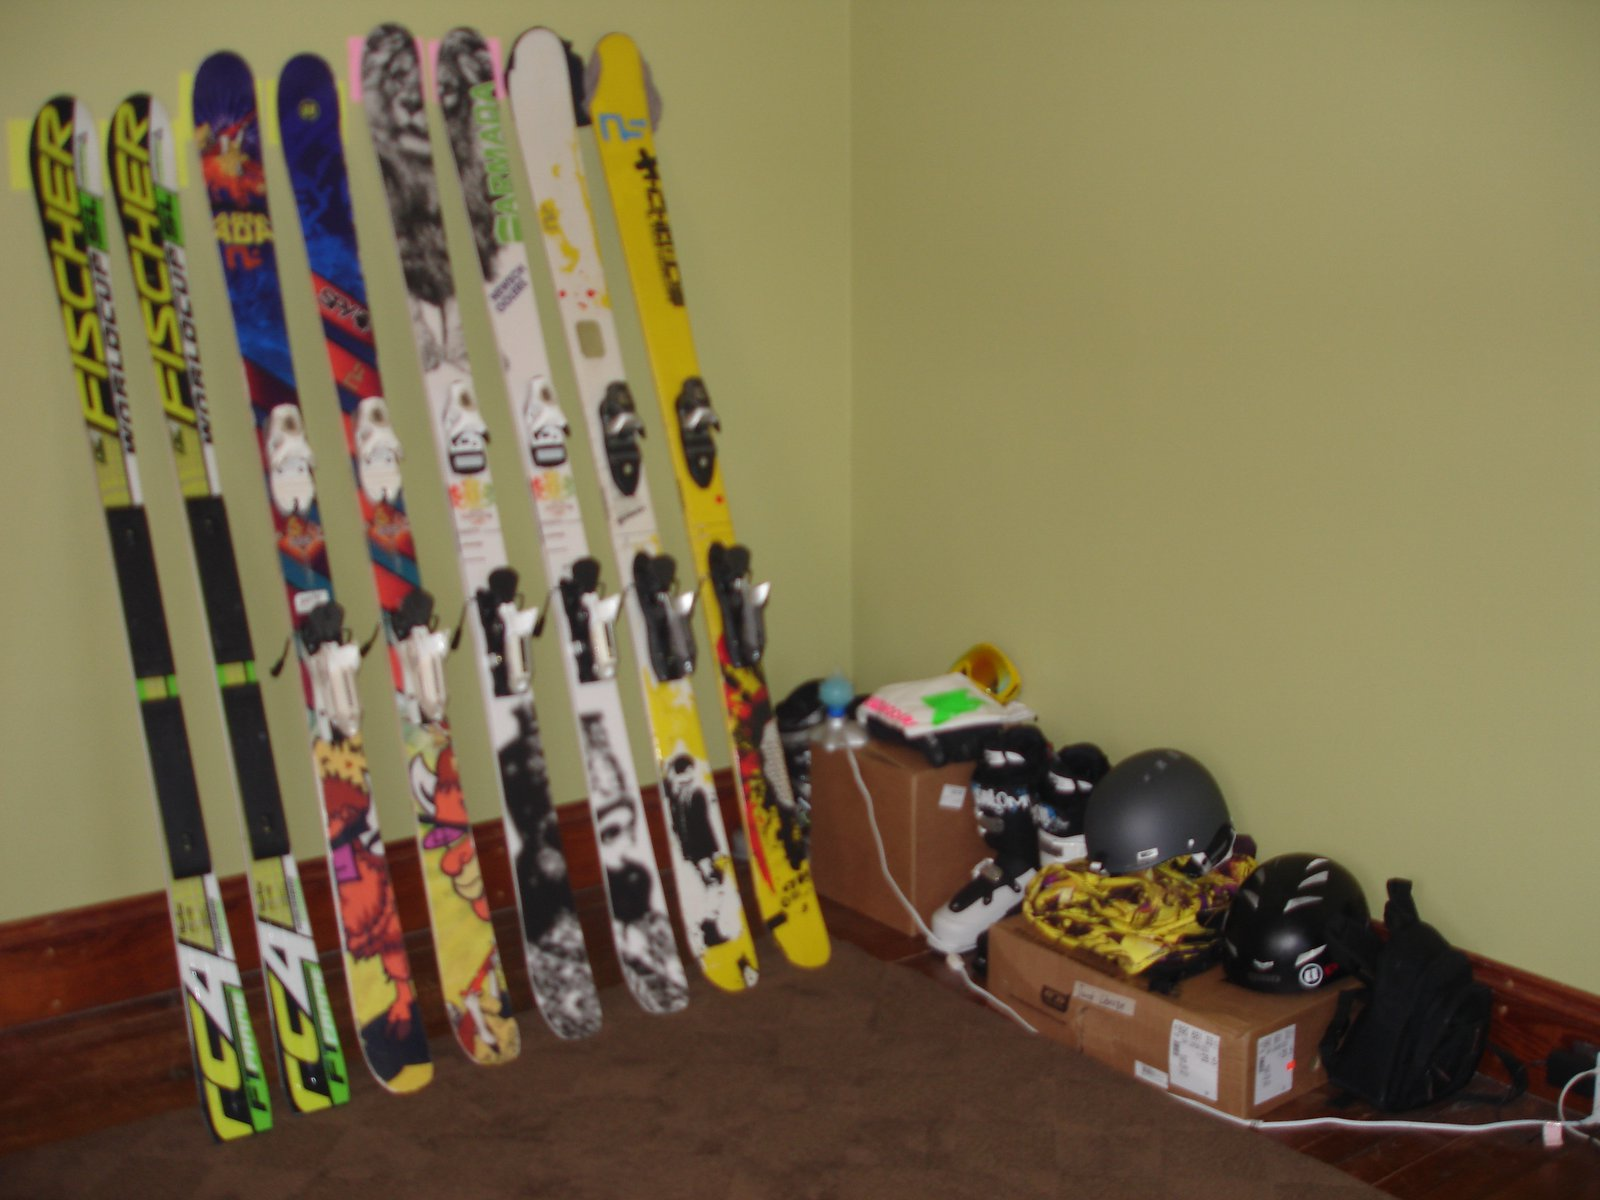 Ski gear and skis